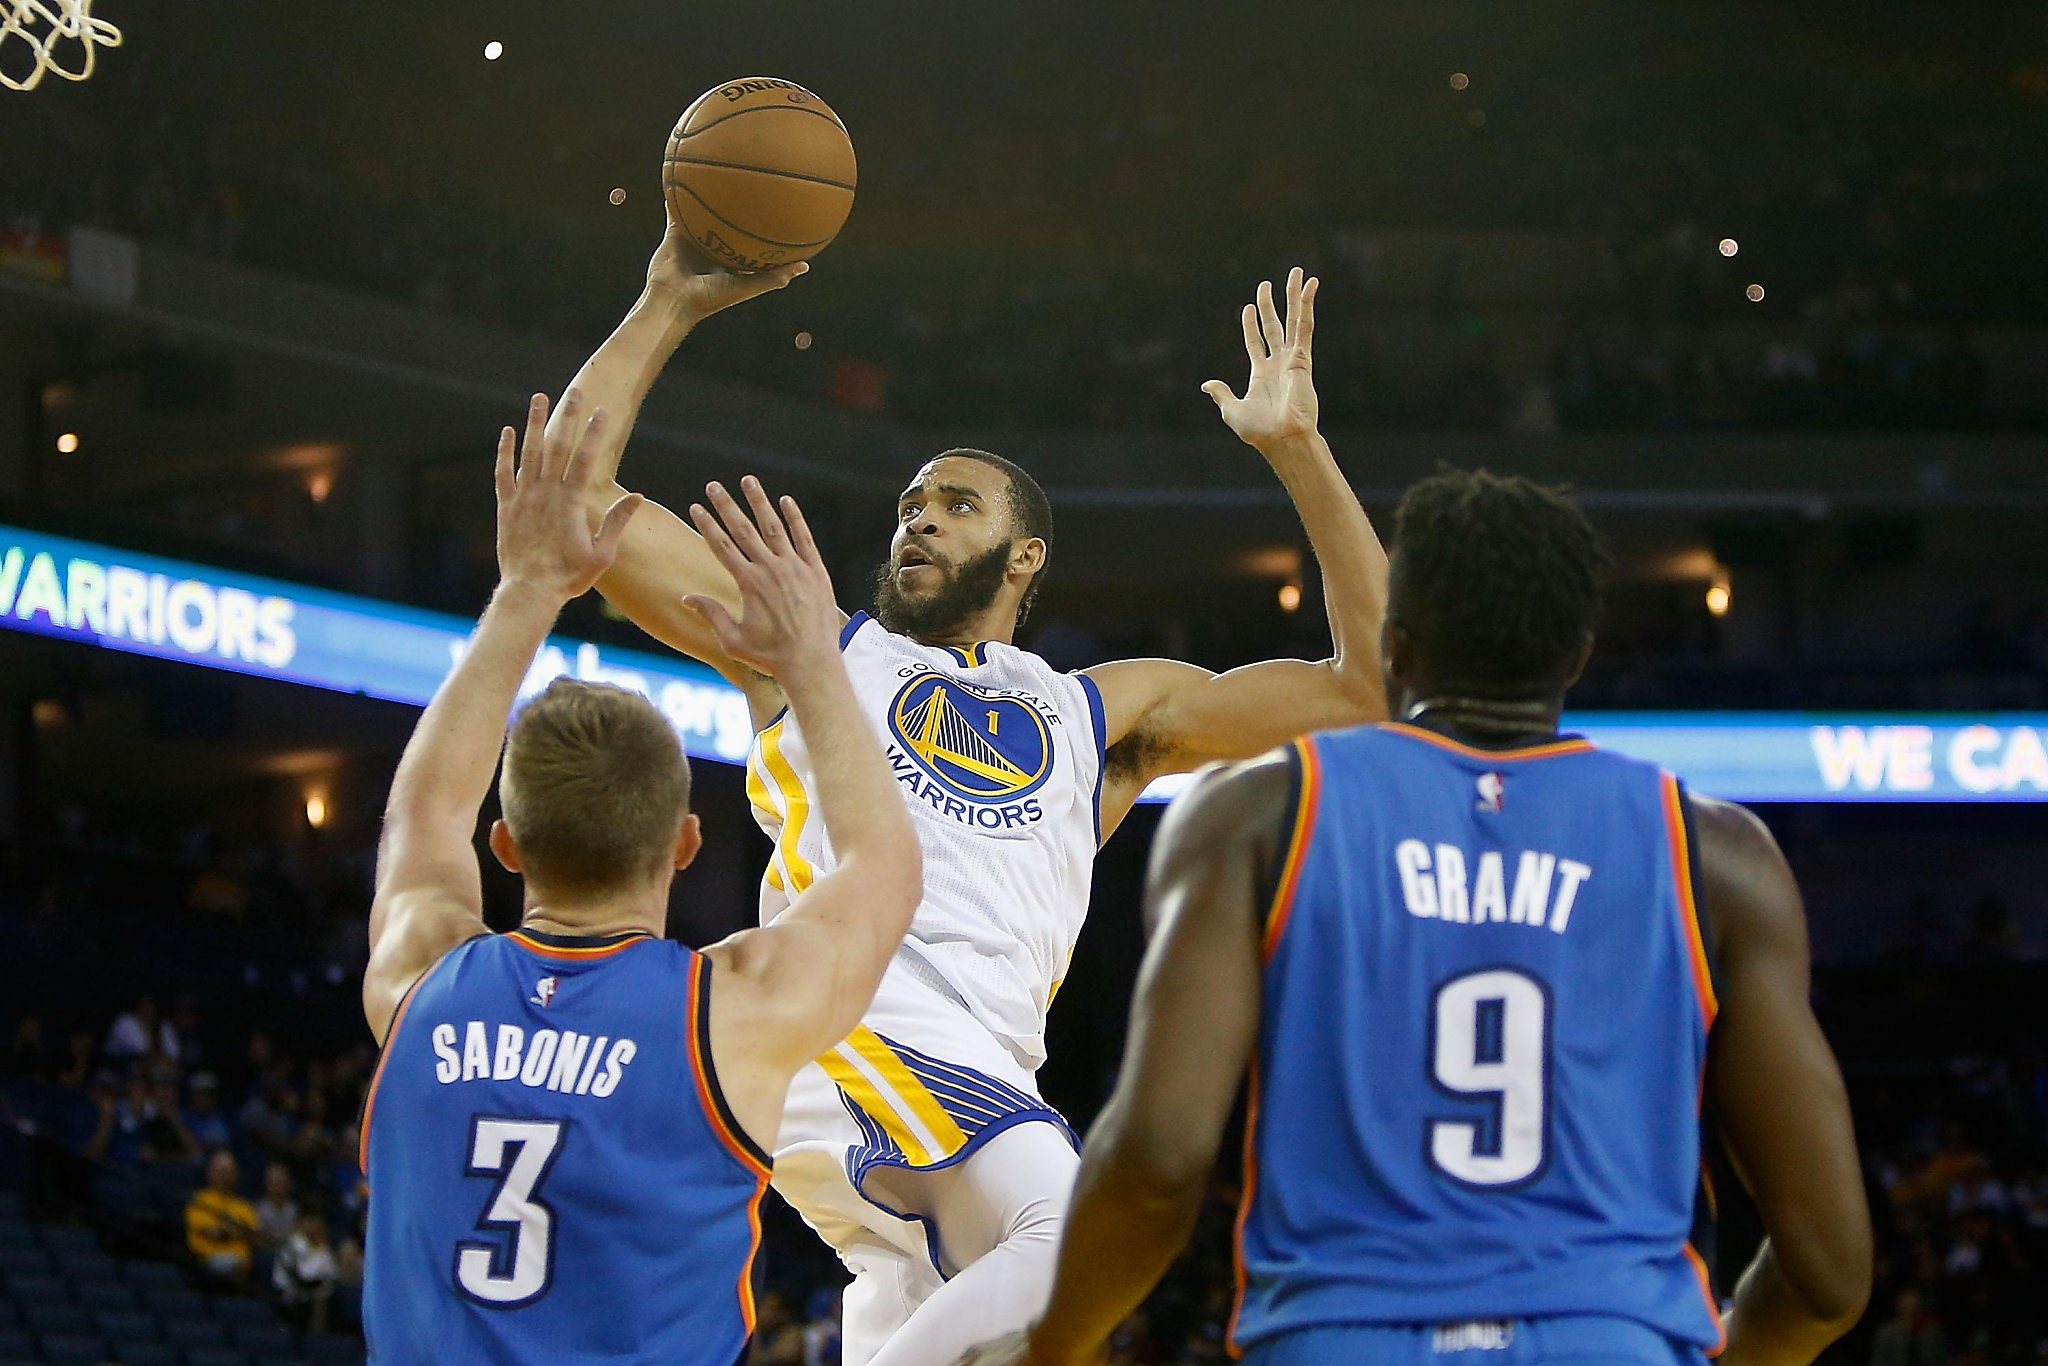 info for 2e693 0c6db Warriors' JaVale McGee in line for expanded role - SFGate